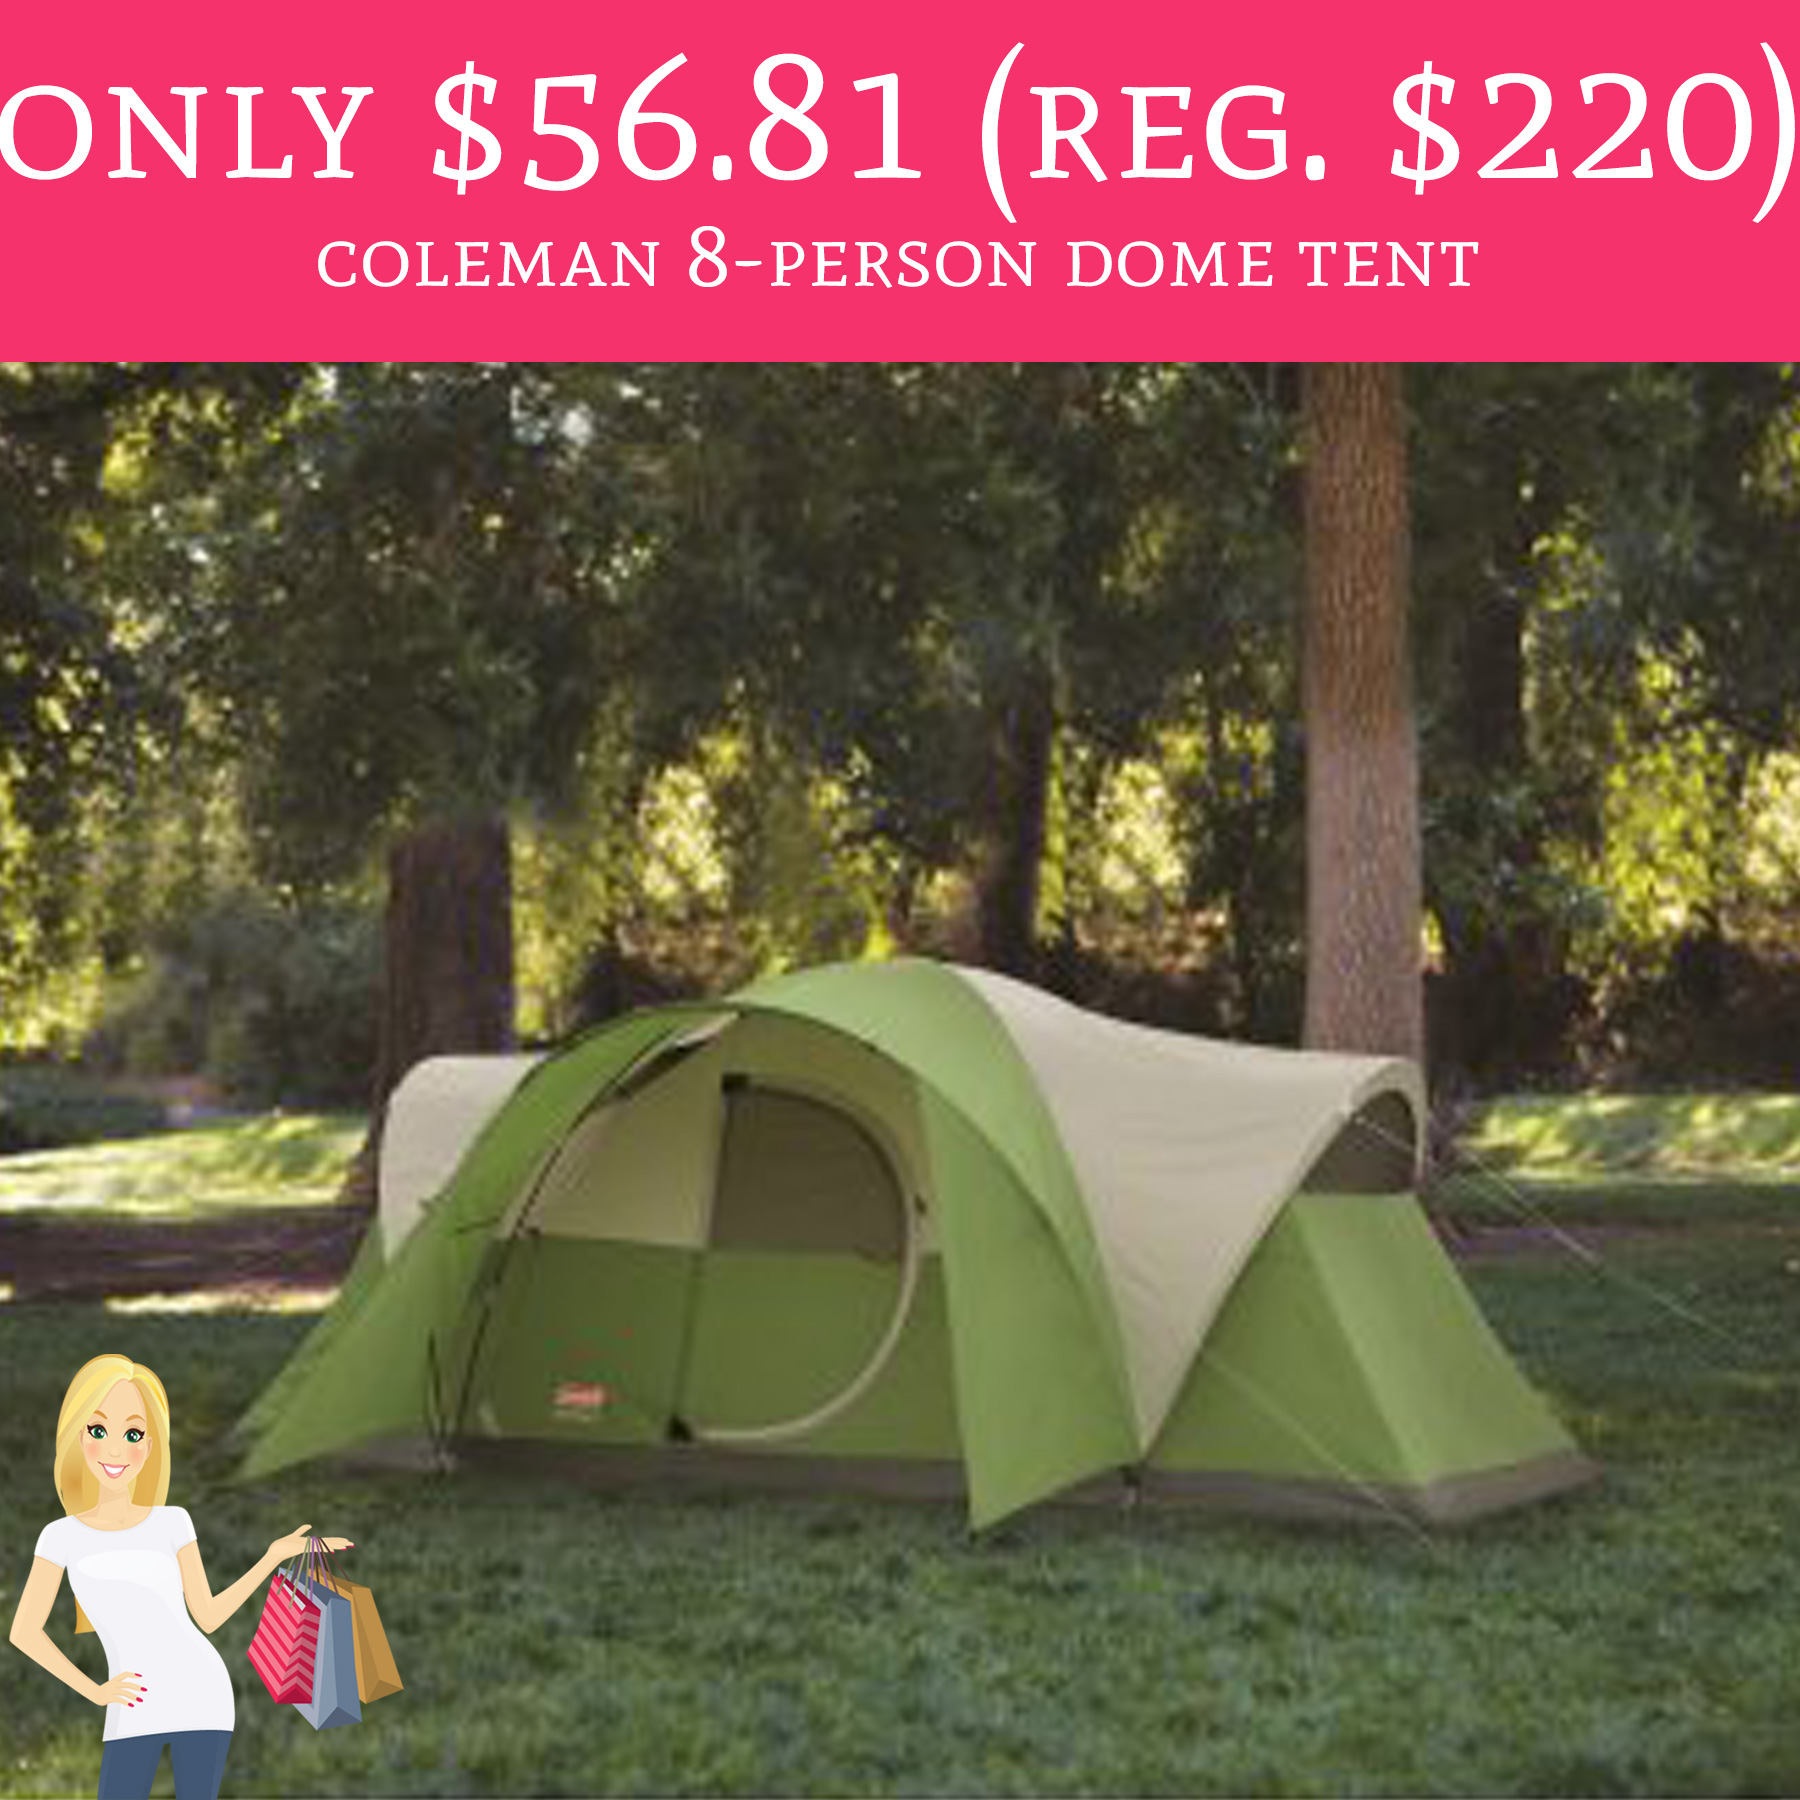 This deal is expired!  sc 1 st  Deal Hunting Babe & RUN! Only $56.81 (Regular $220) Coleman Montana 8-Person Dome Tent ...